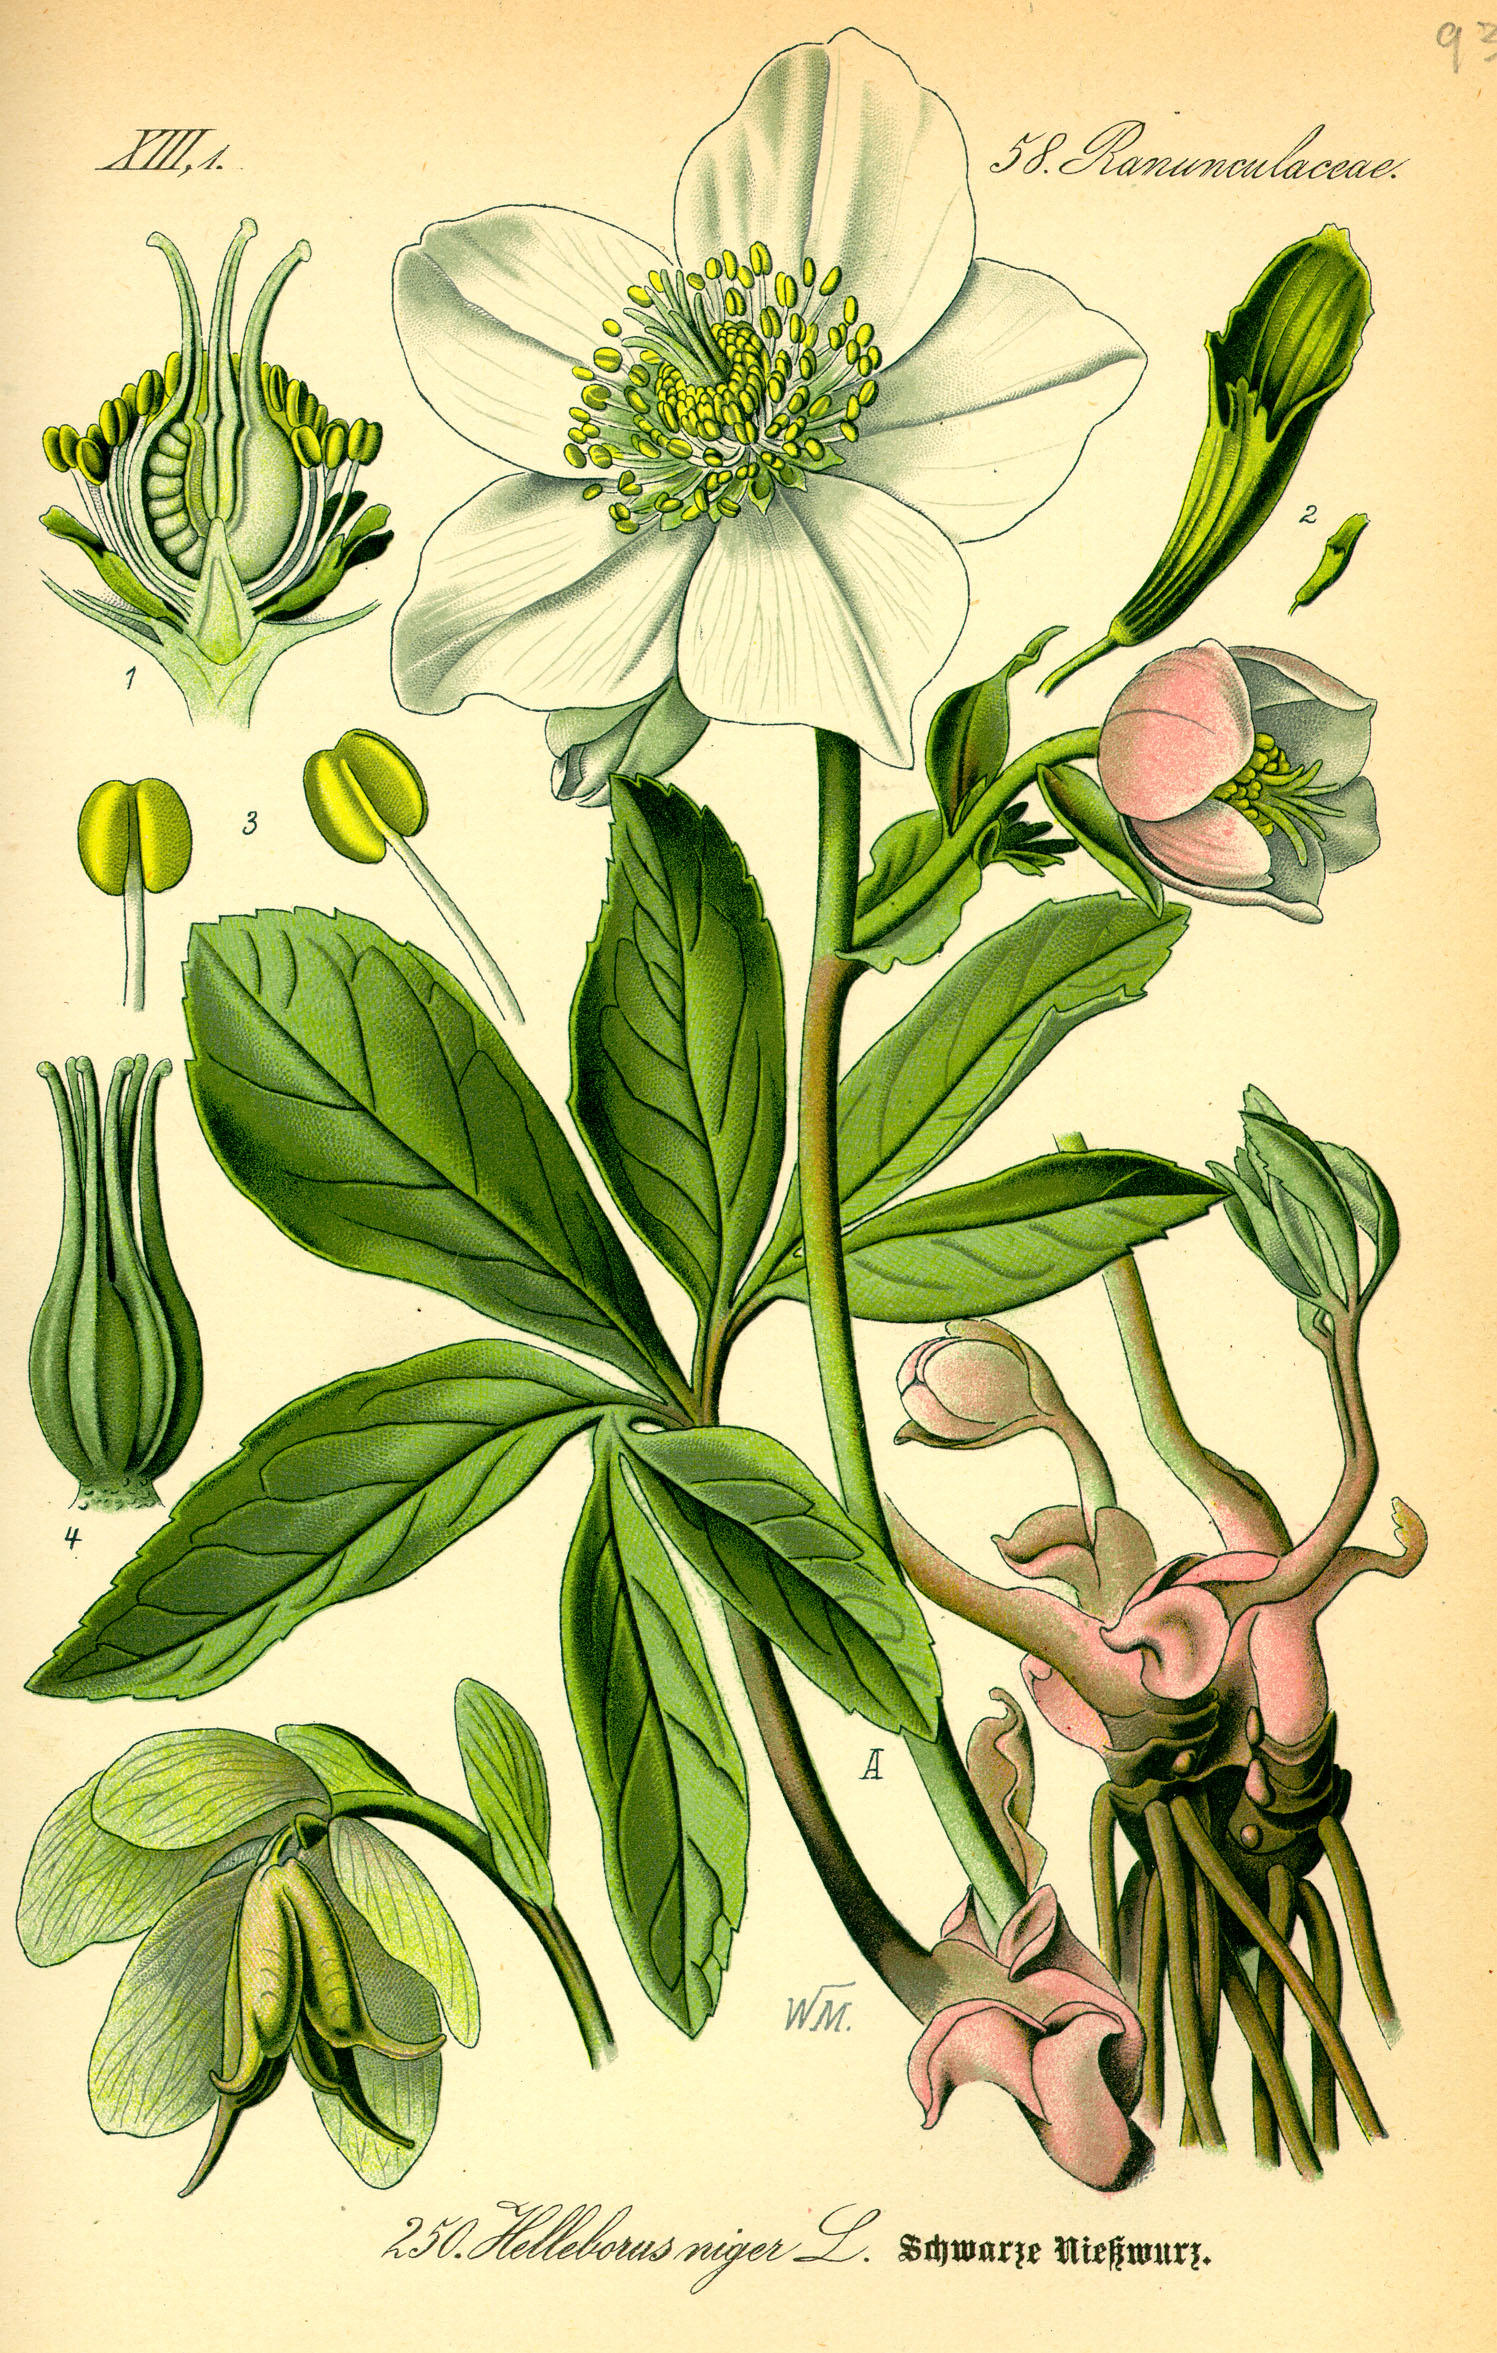 http://upload.wikimedia.org/wikipedia/commons/b/b0/Illustration_Helleborus_niger0.jpg